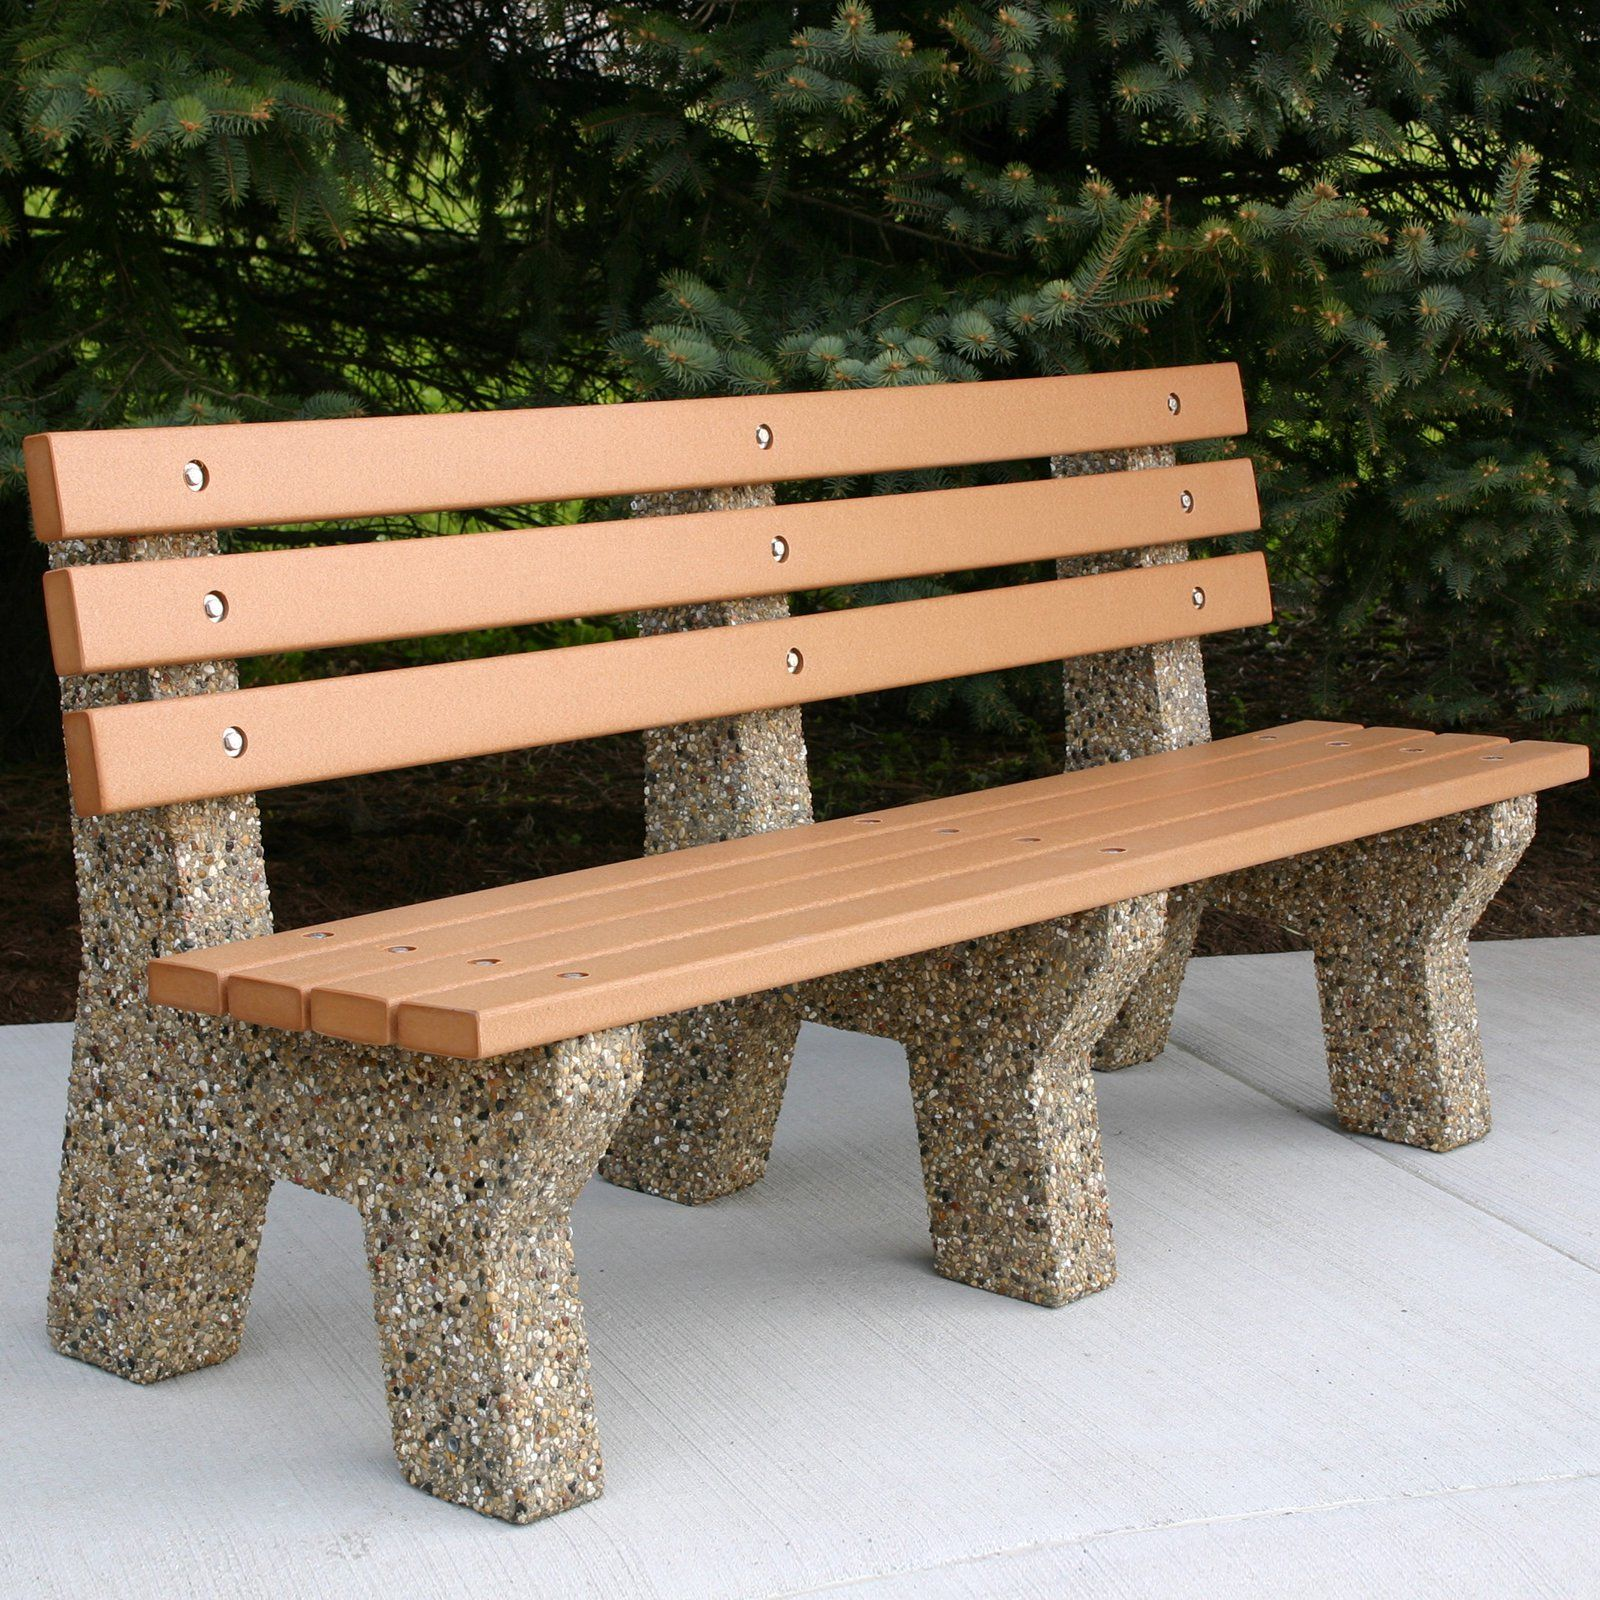 Outdoor Doty Sons Recycled Plastic Lumber Concrete Bench 6 Ft